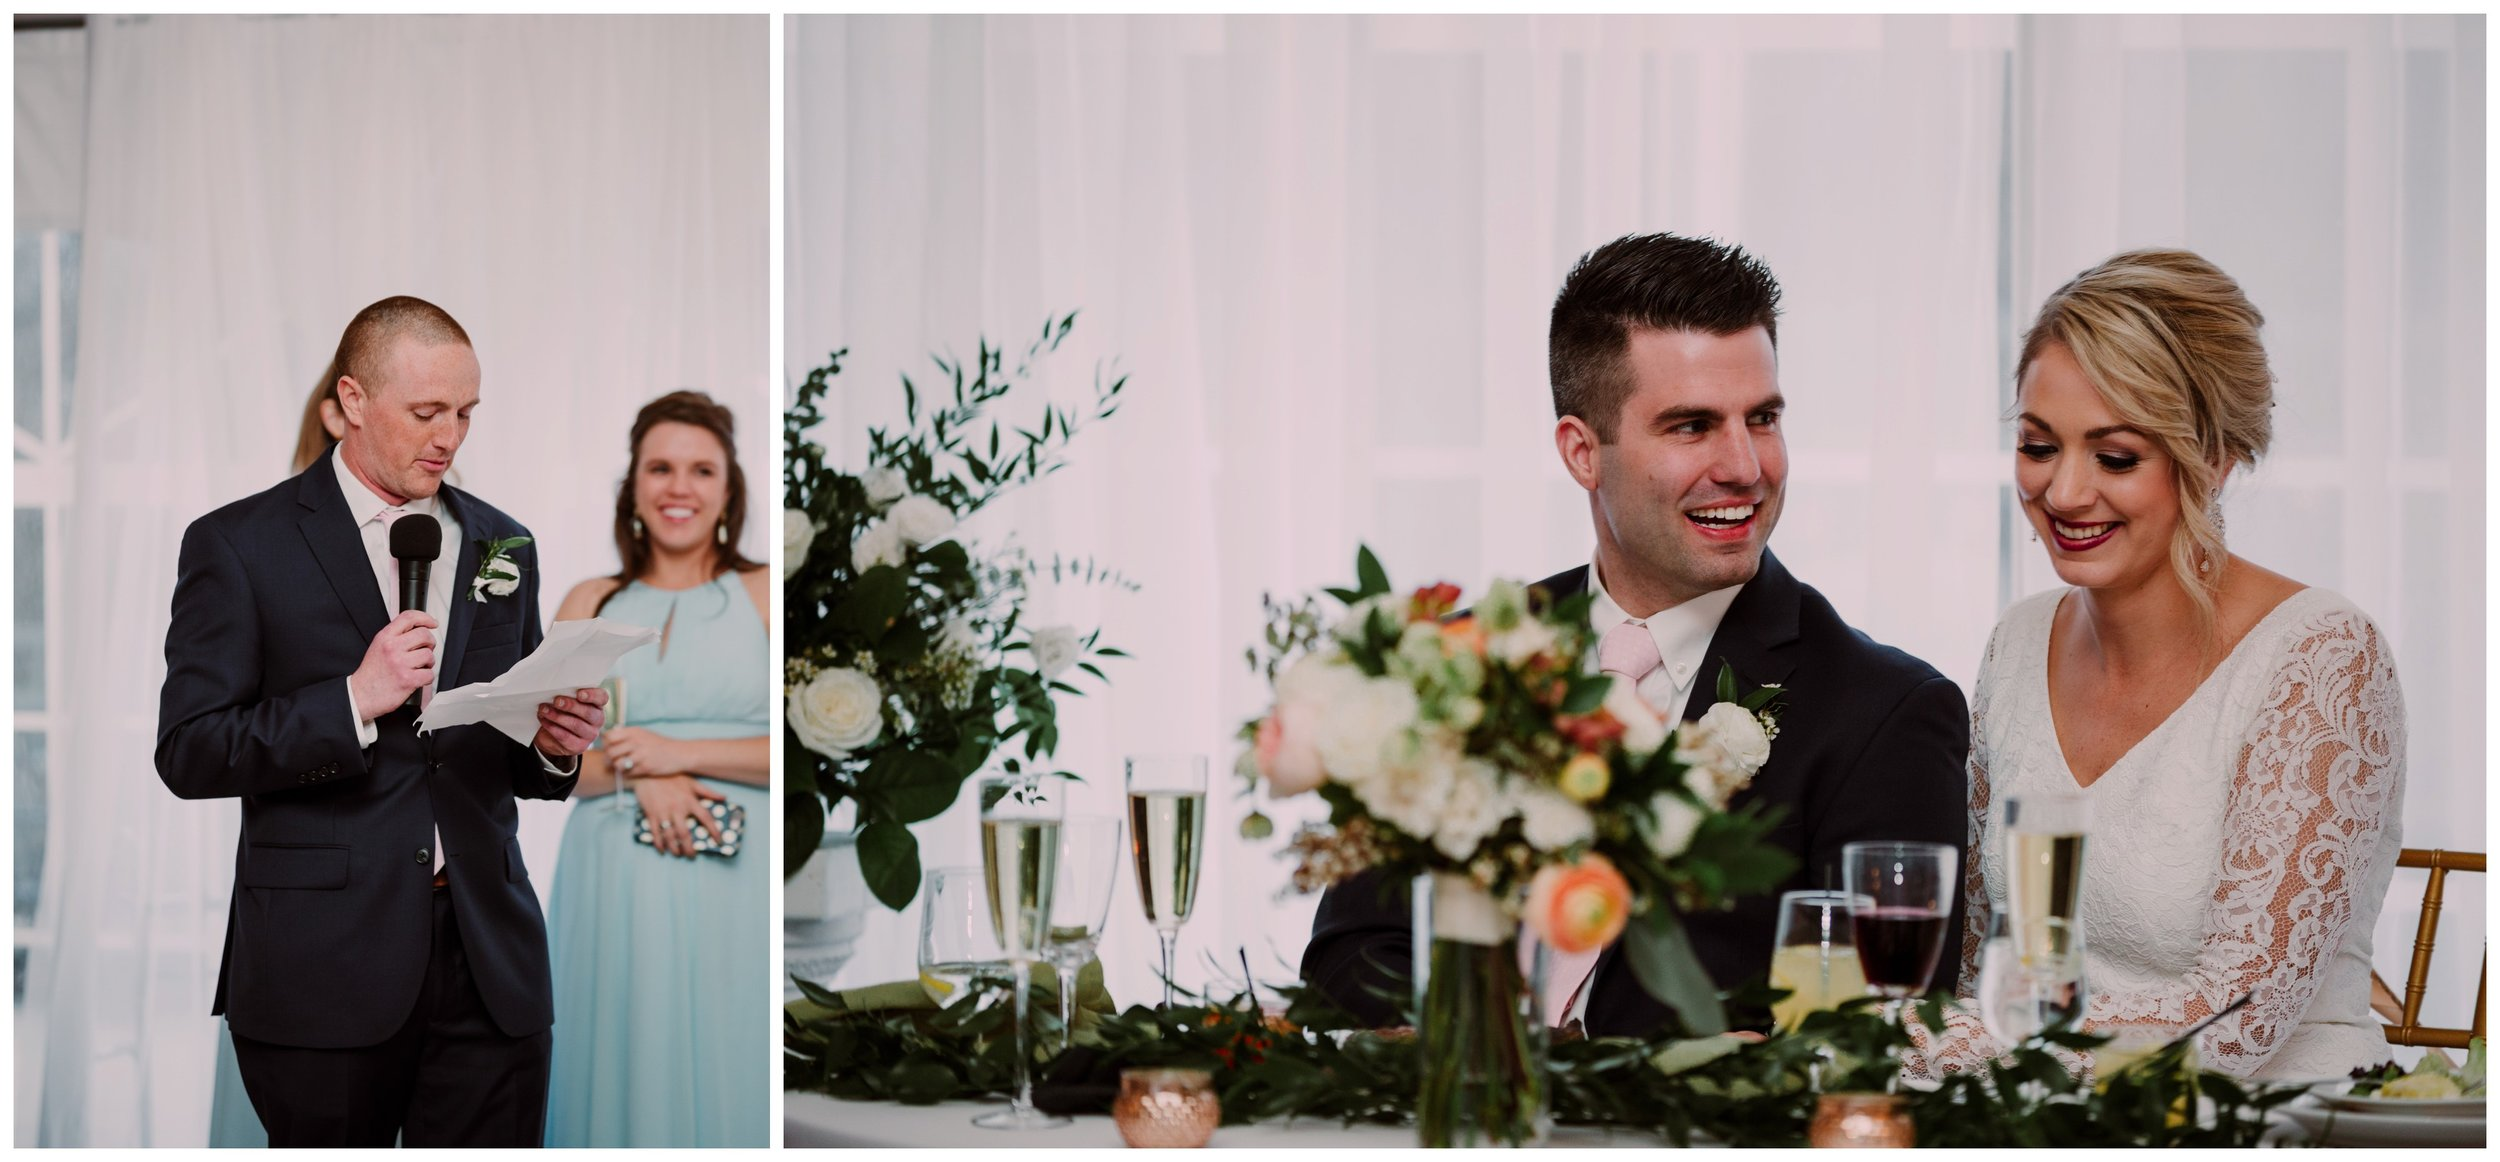 Andrea & Kyle | Traditional Virginia Rust Manor Wedding Highlights | Virginia Wedding Photographer-46.jpg